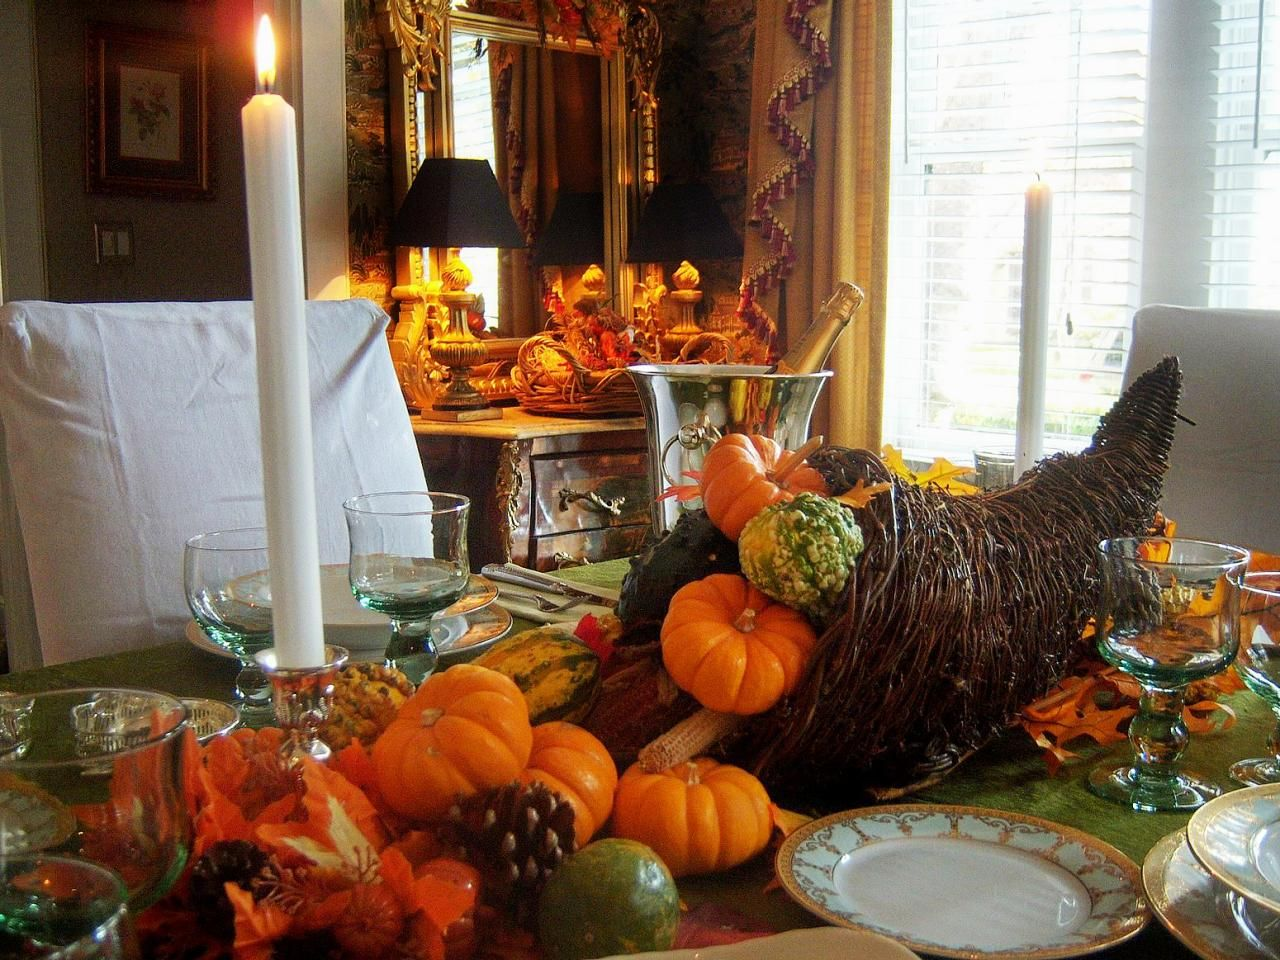 Traditional Thanksgiving Decorating Ideas | Living Room And Dining Room  Decorating Ideas And Design | HGTV Design